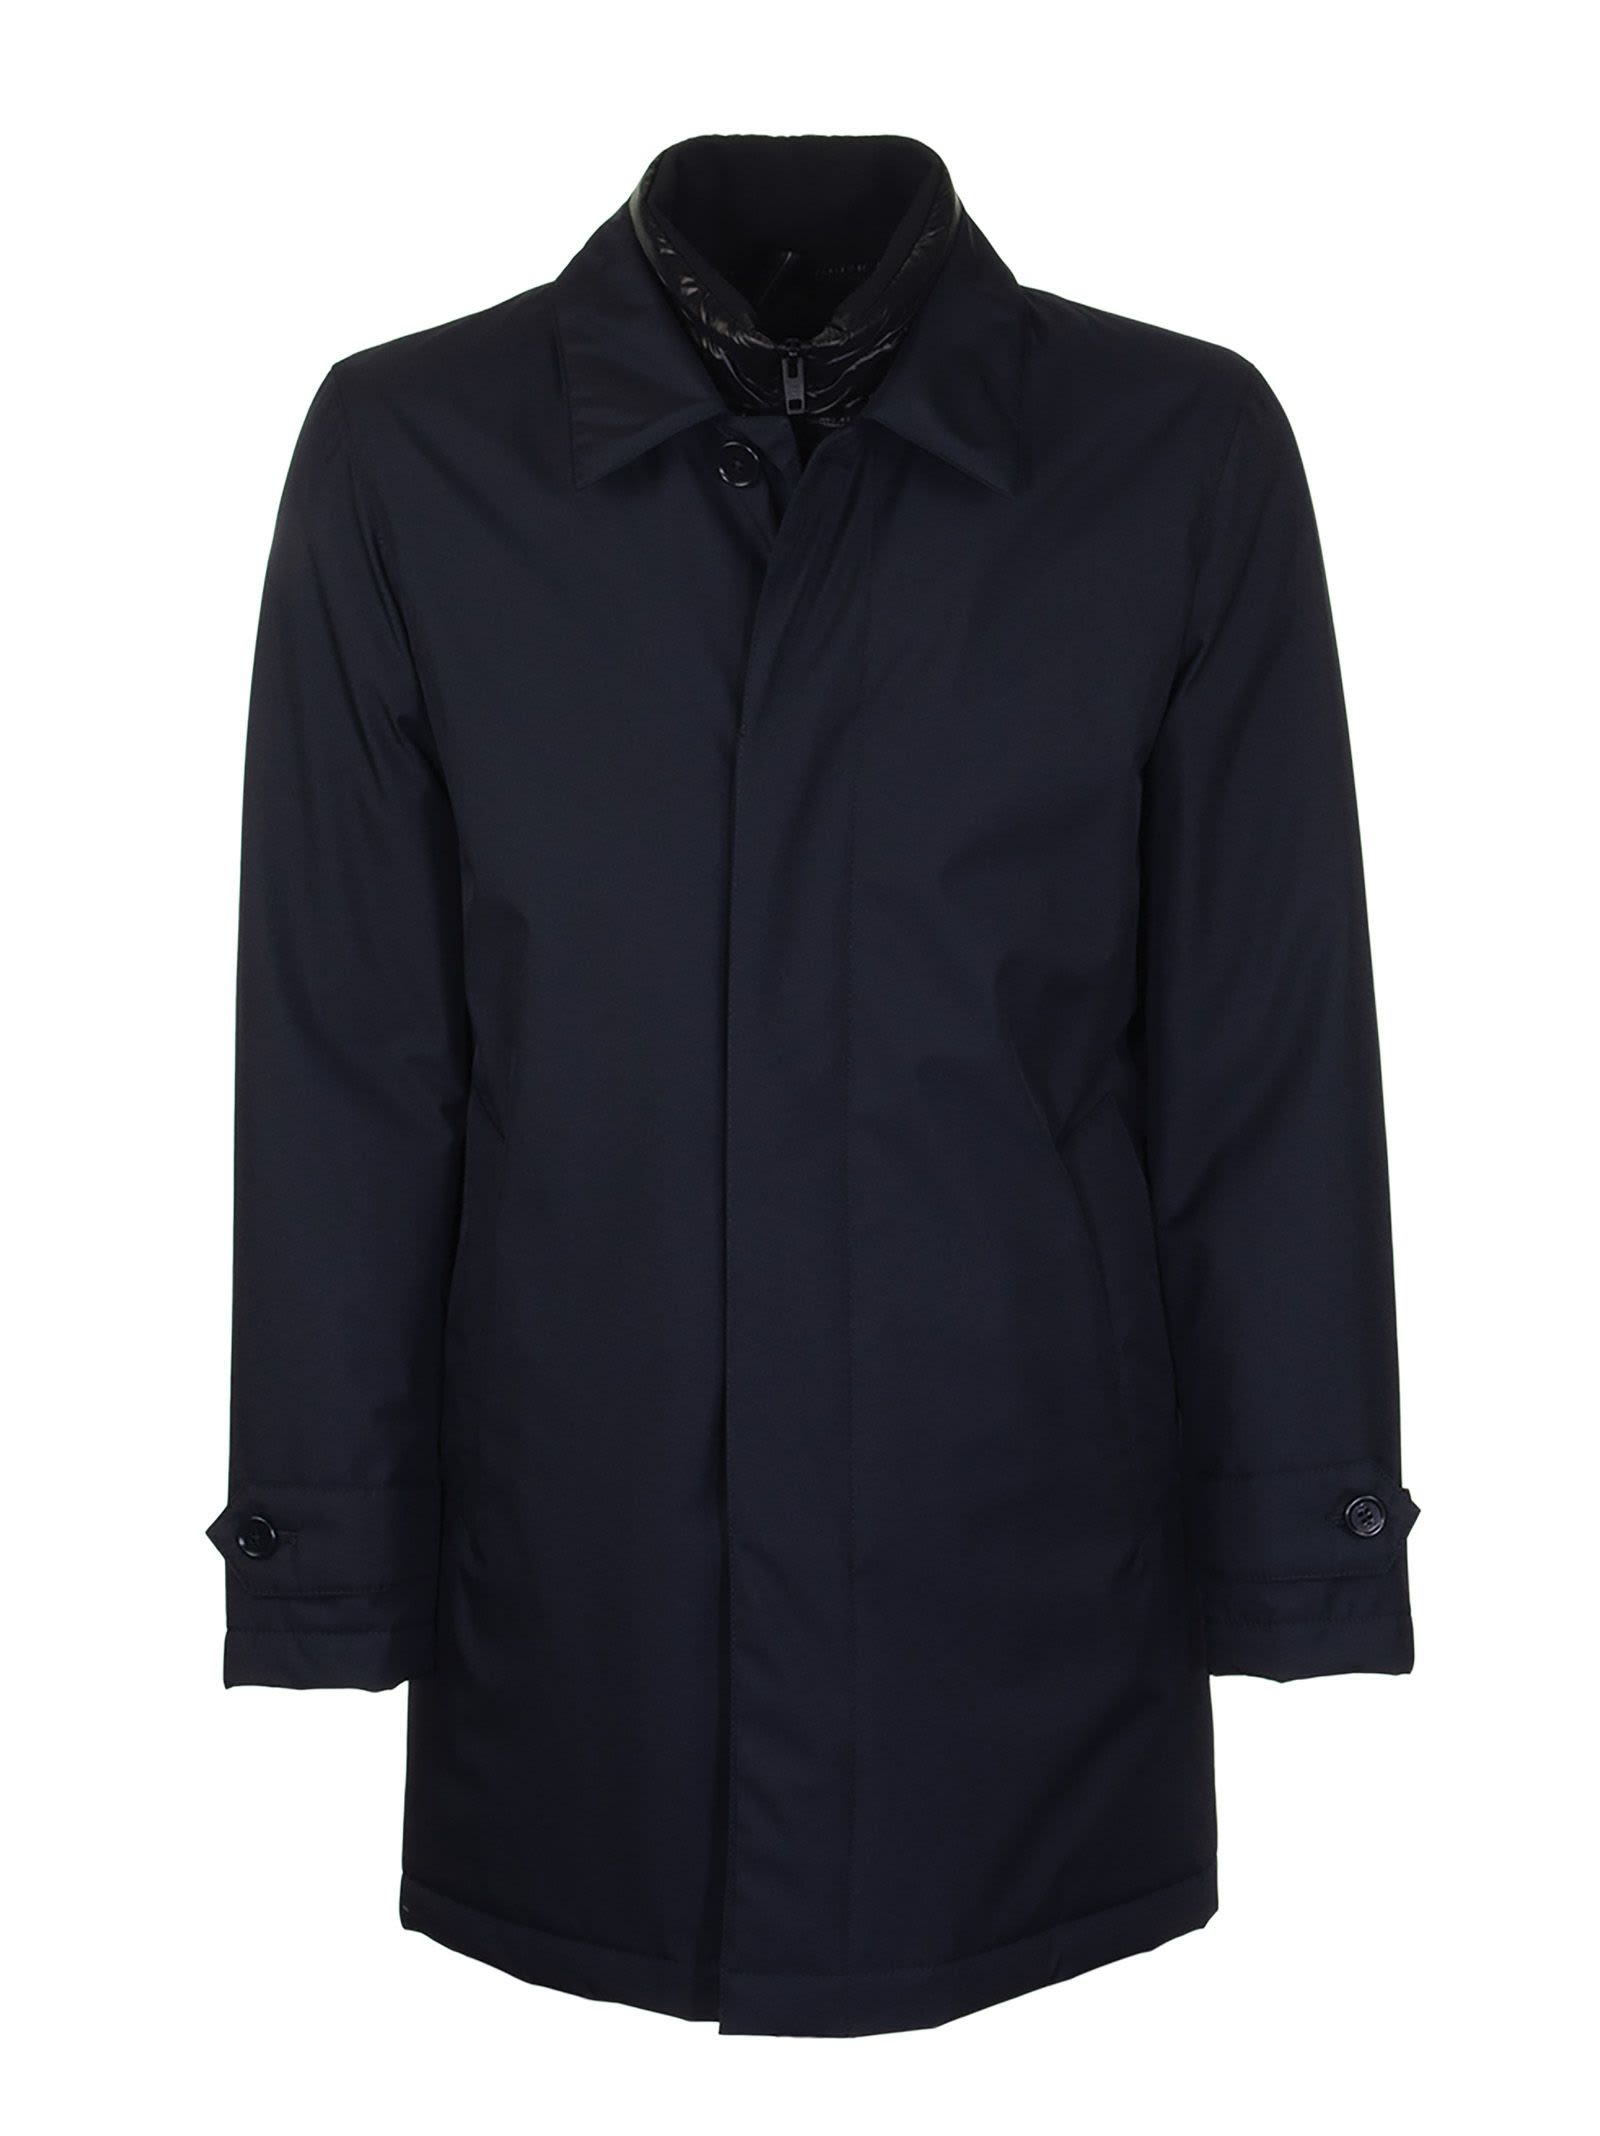 Raincoat in high-tech fabric with double front construction, zip and button fastening and slanted pockets. Ideal for an on-trend gentleman, with hints of standard, classic elegance. Composition: SHELL:100%POLYESTER LINING:100% POLYAMIDE FILLING:100%POLYESTER